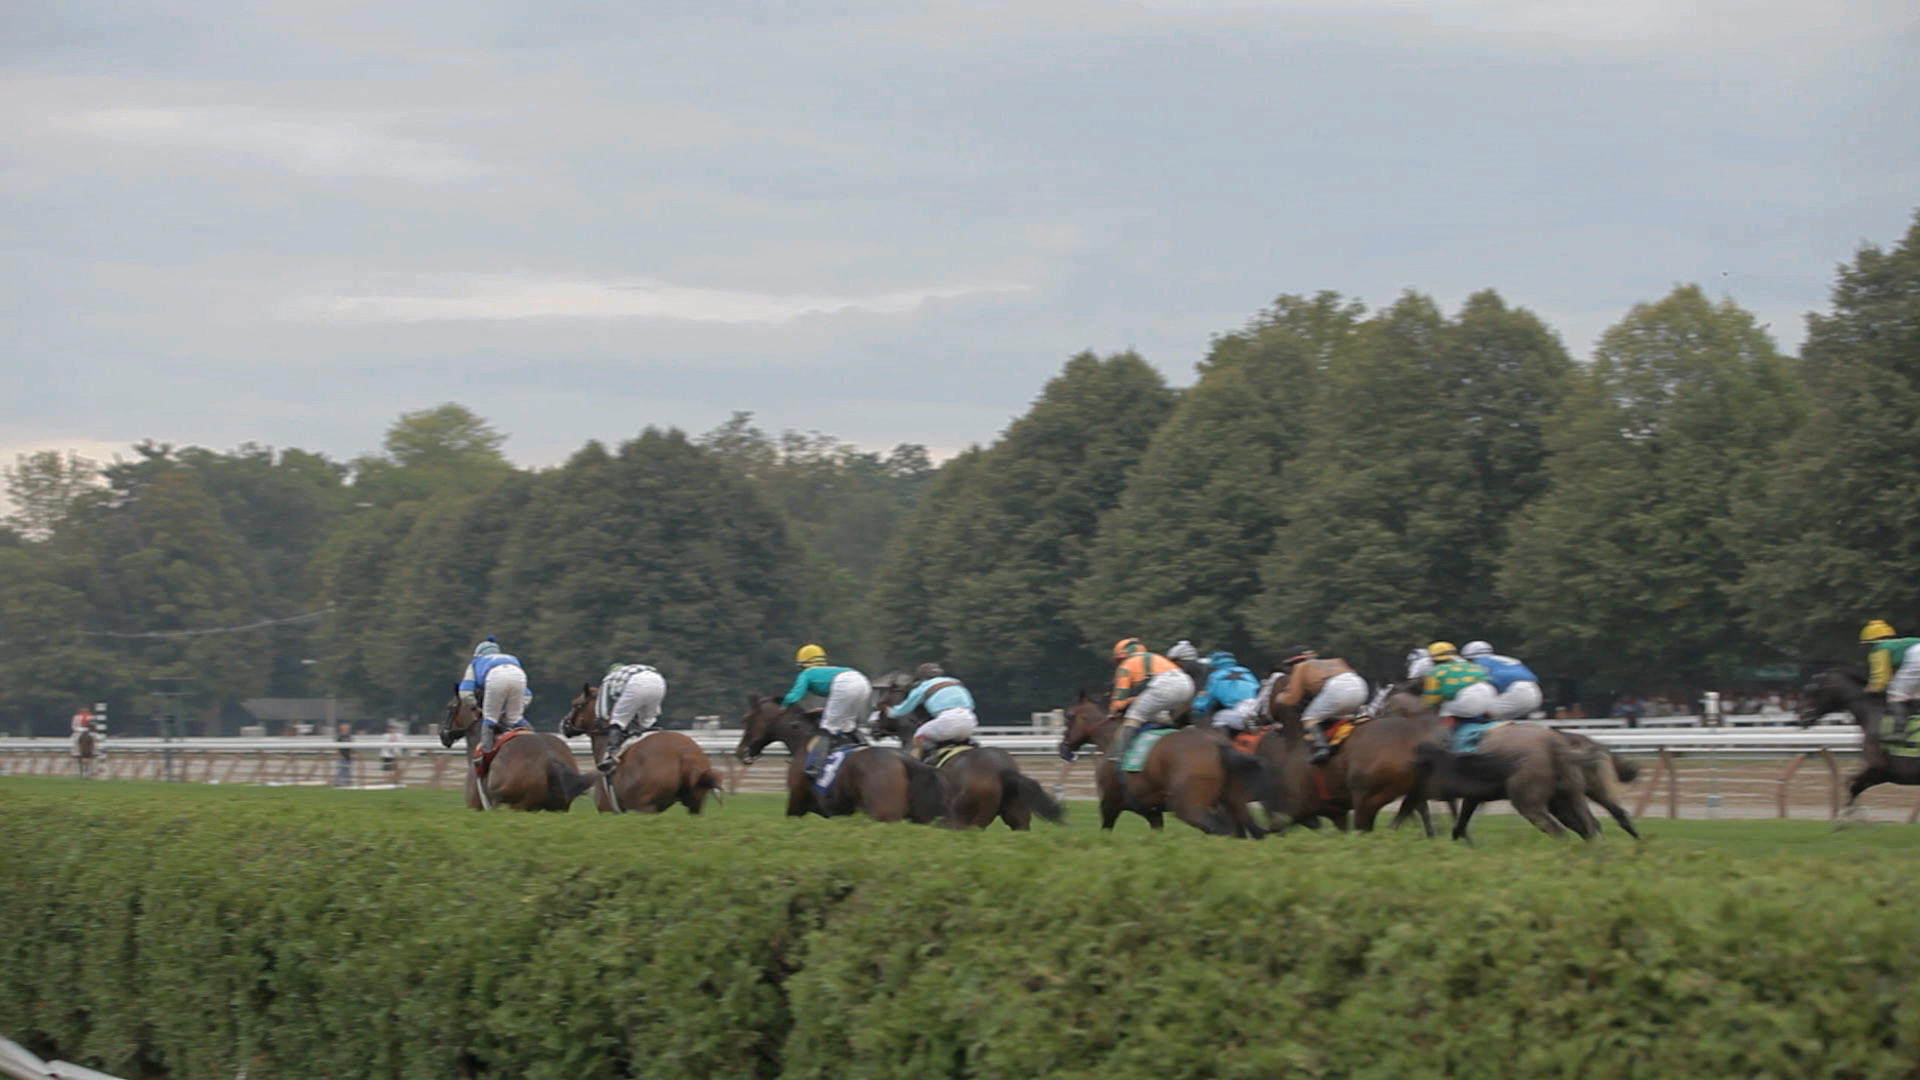 Where to bet on kentucky derby in nyc israel northern ireland betting preview on betfair